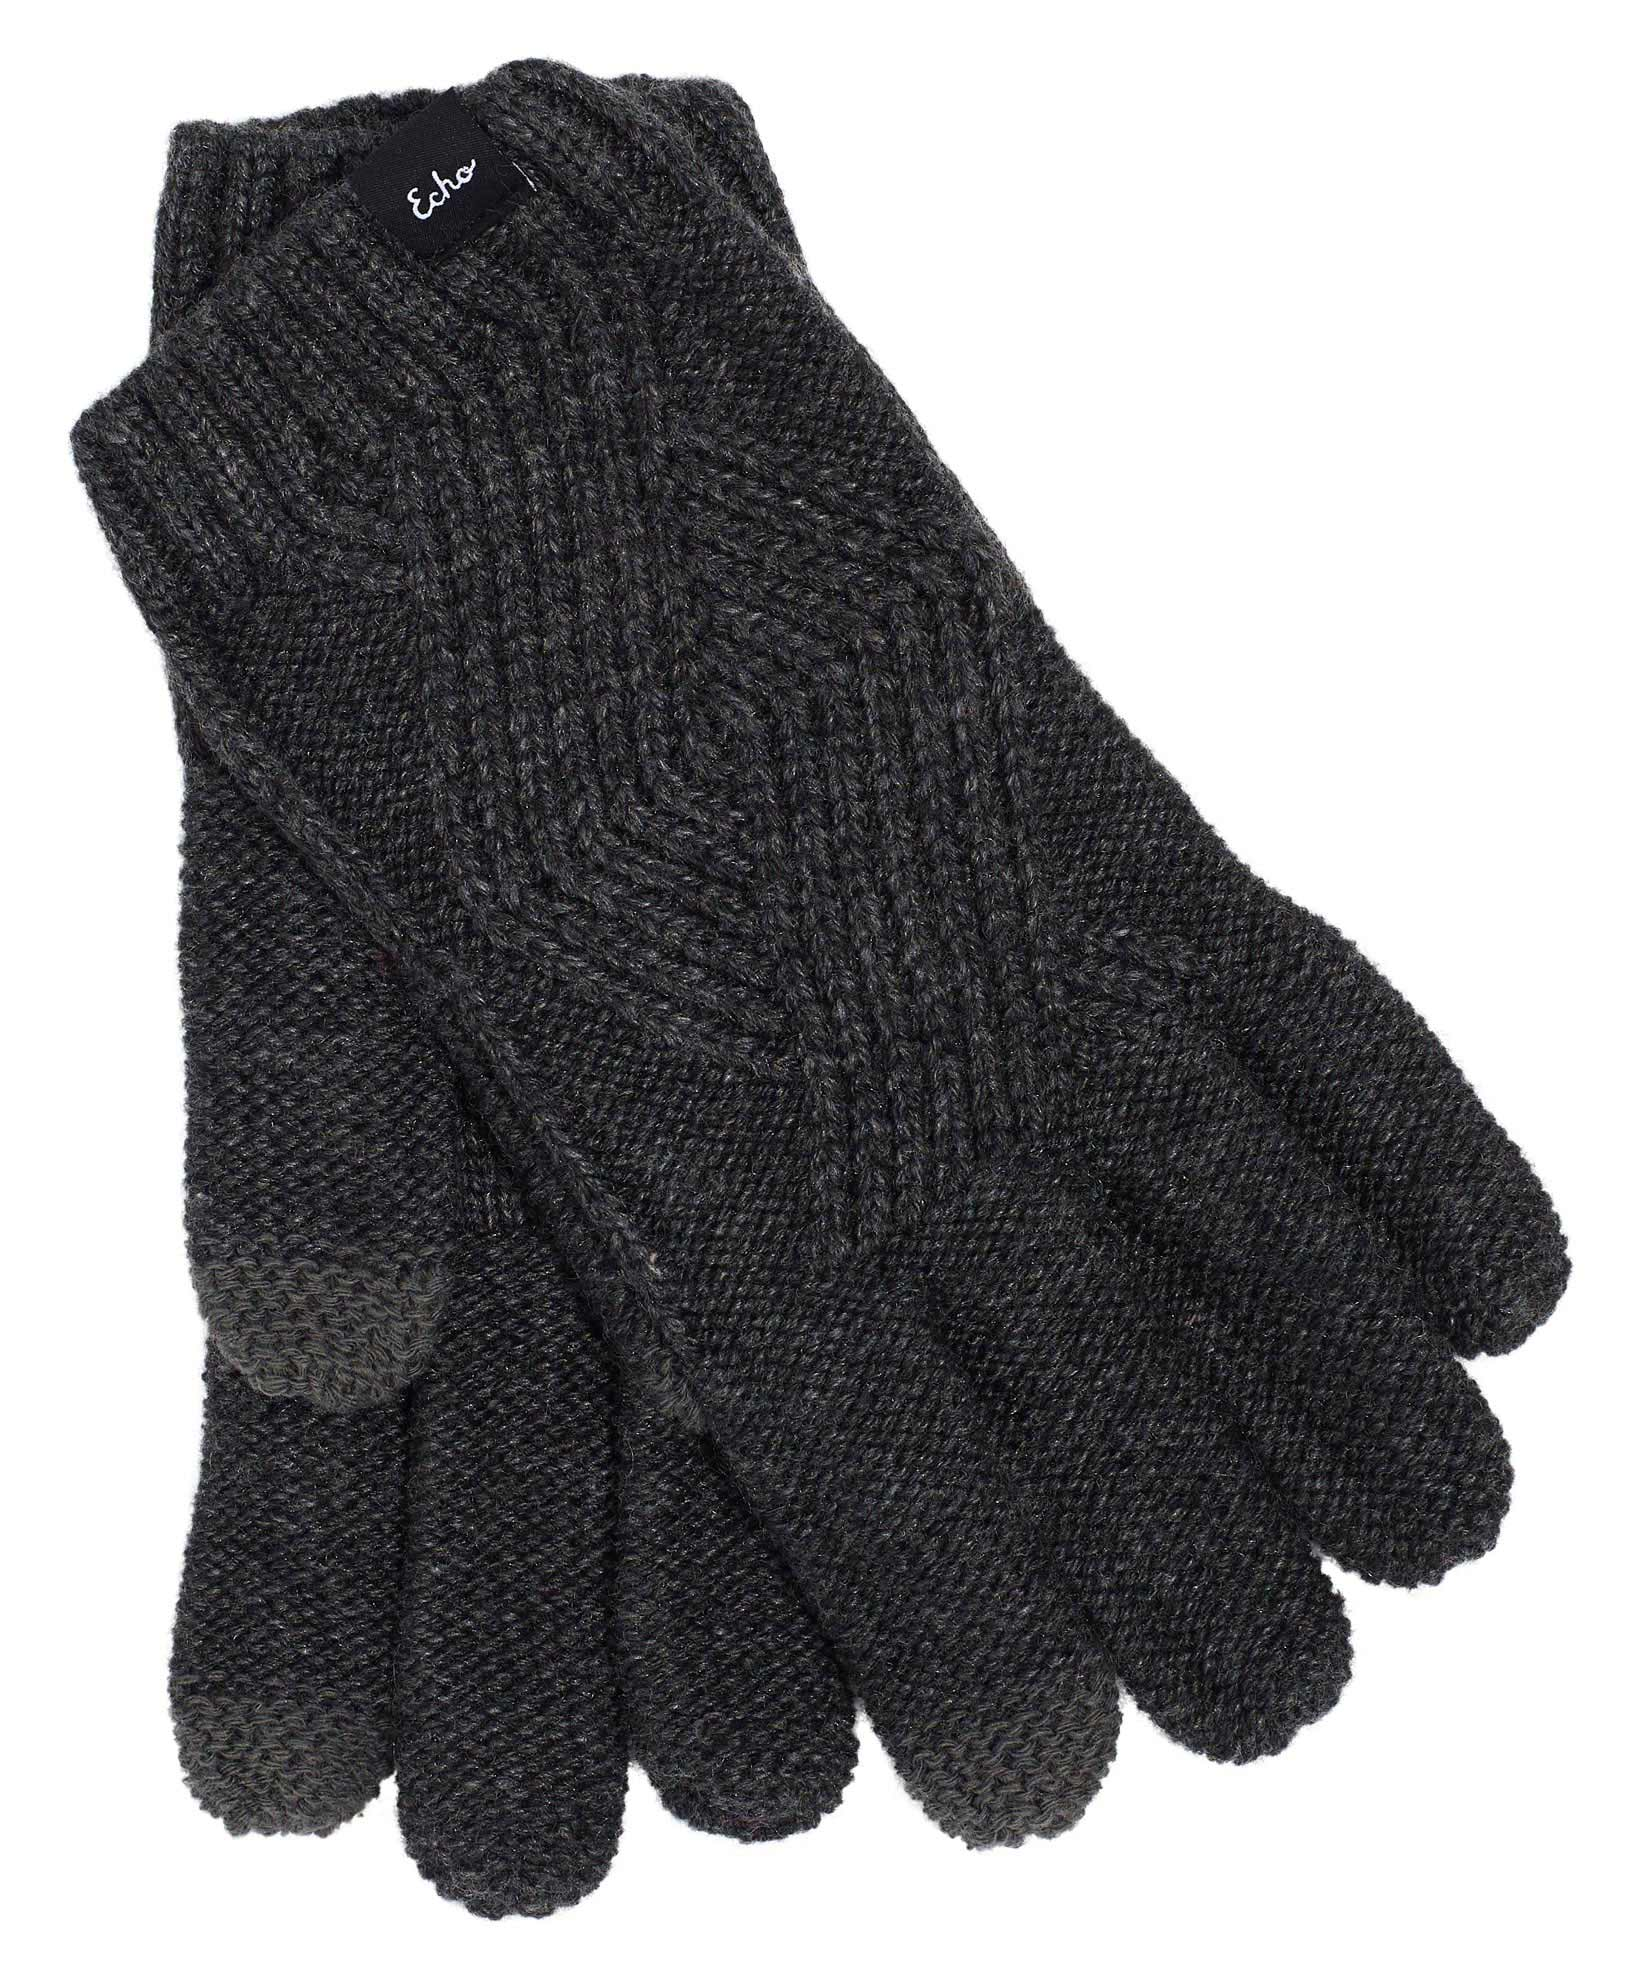 Charcoal - Recycled Cable Glove